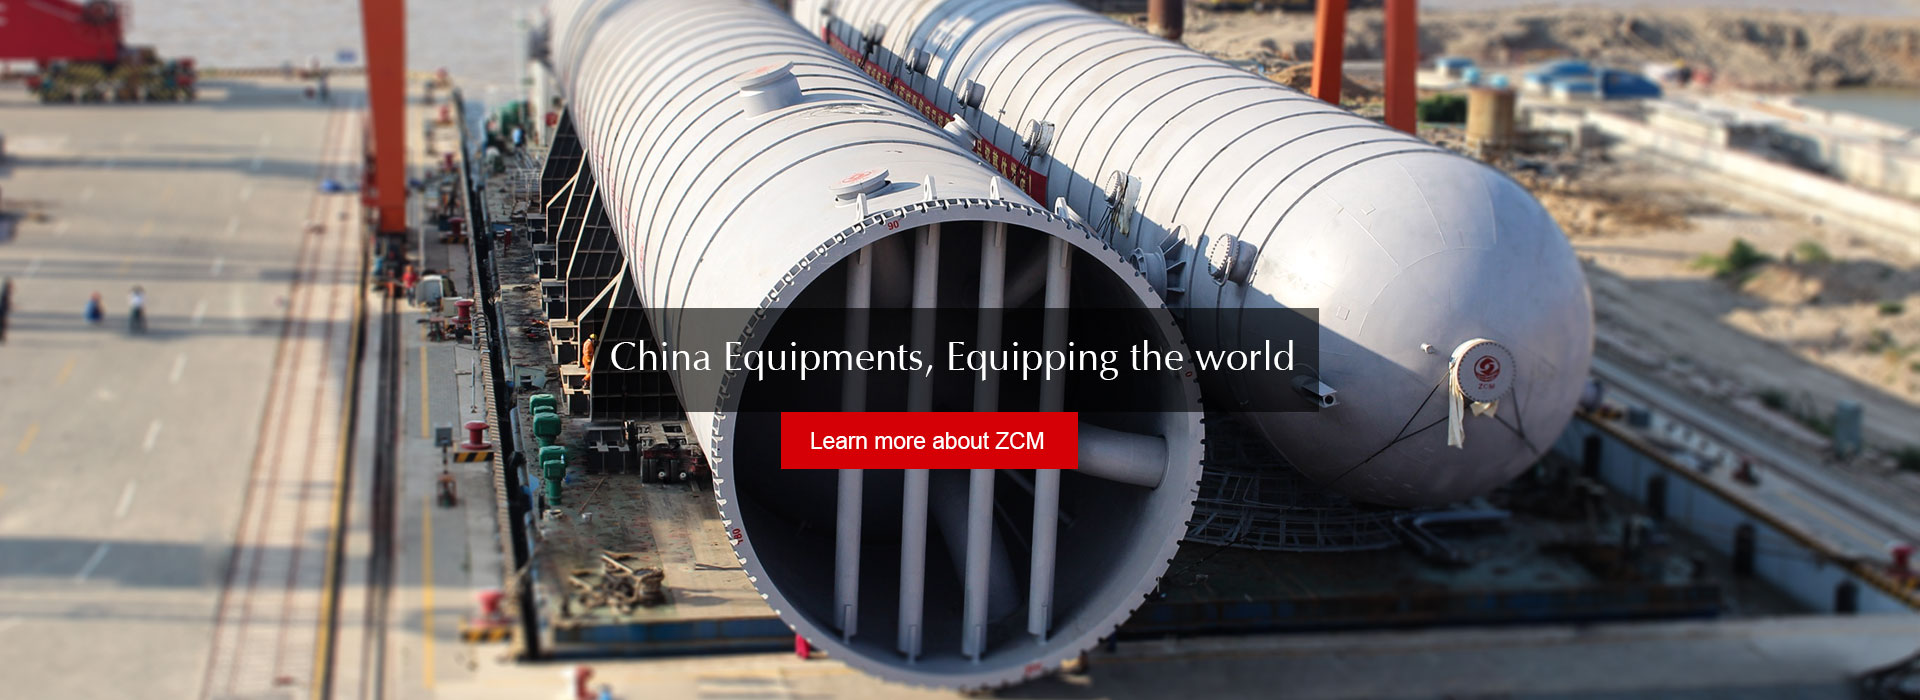 China Equipments, Equipping the world